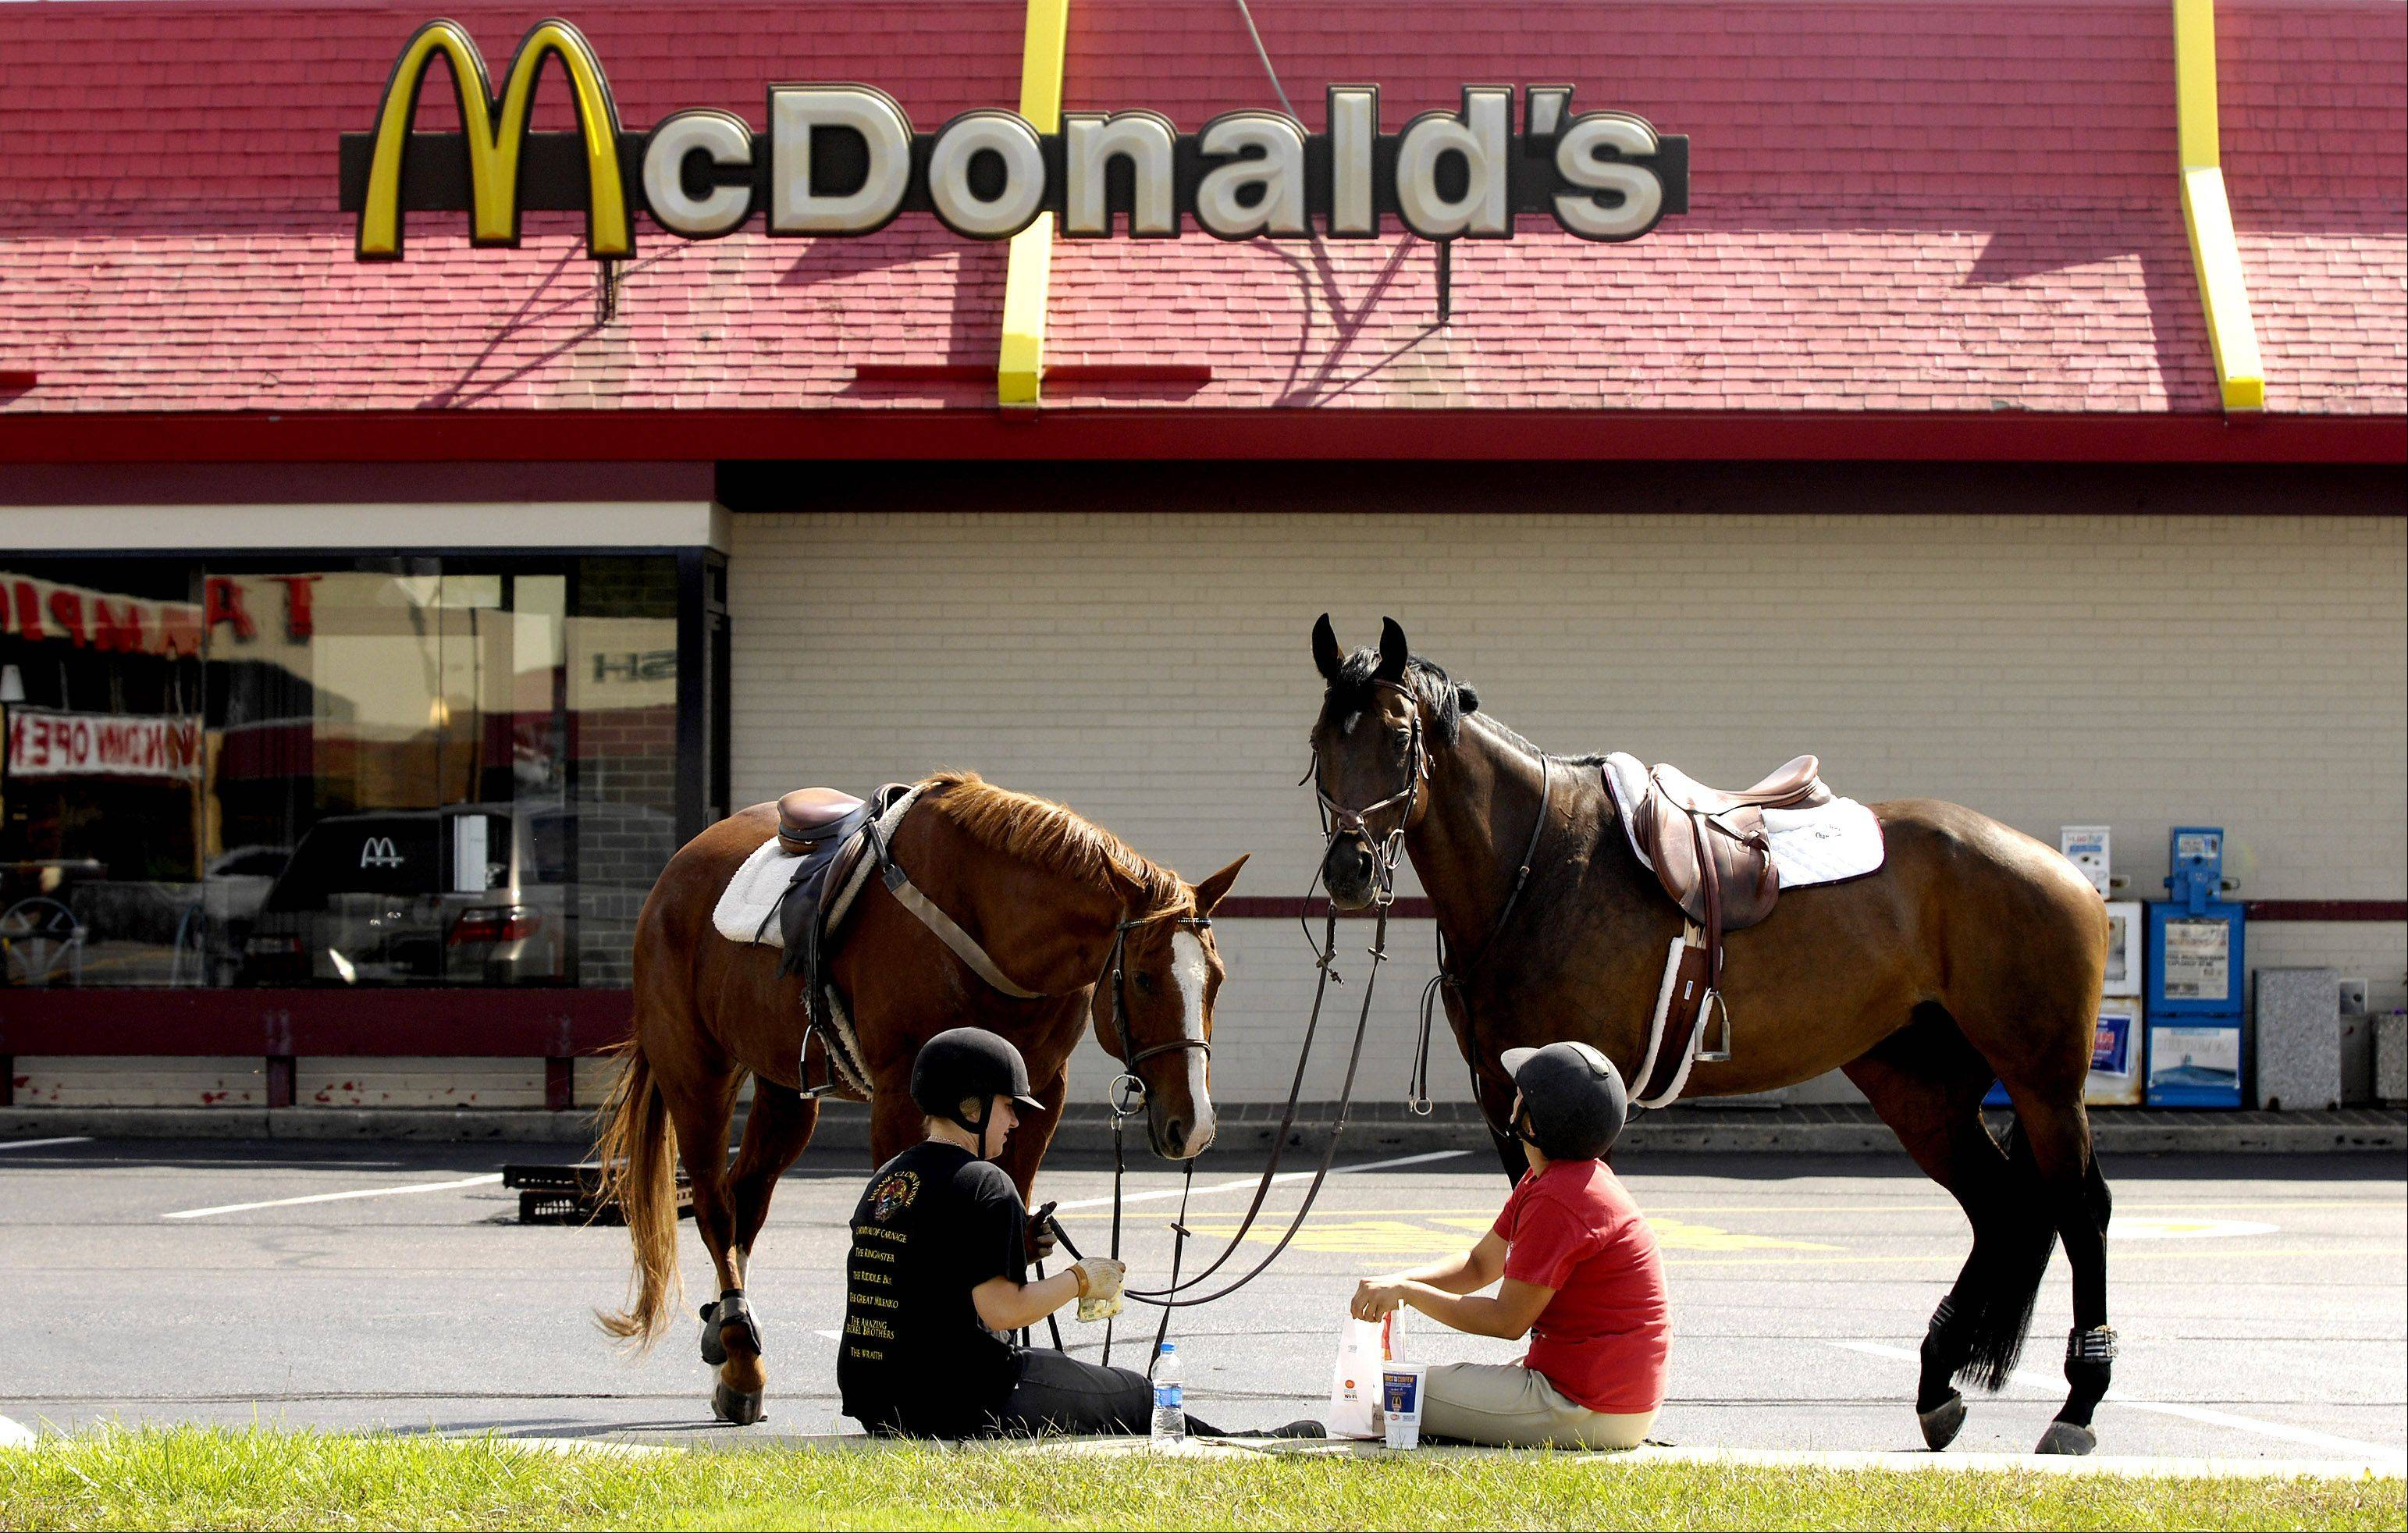 Shelby Watts of Wayne, left, with her horse, Calvin, and Alexis Muuss of Bartlett, accompanied by Ivy, take a break at the West Chicago McDonald's on Route 59.